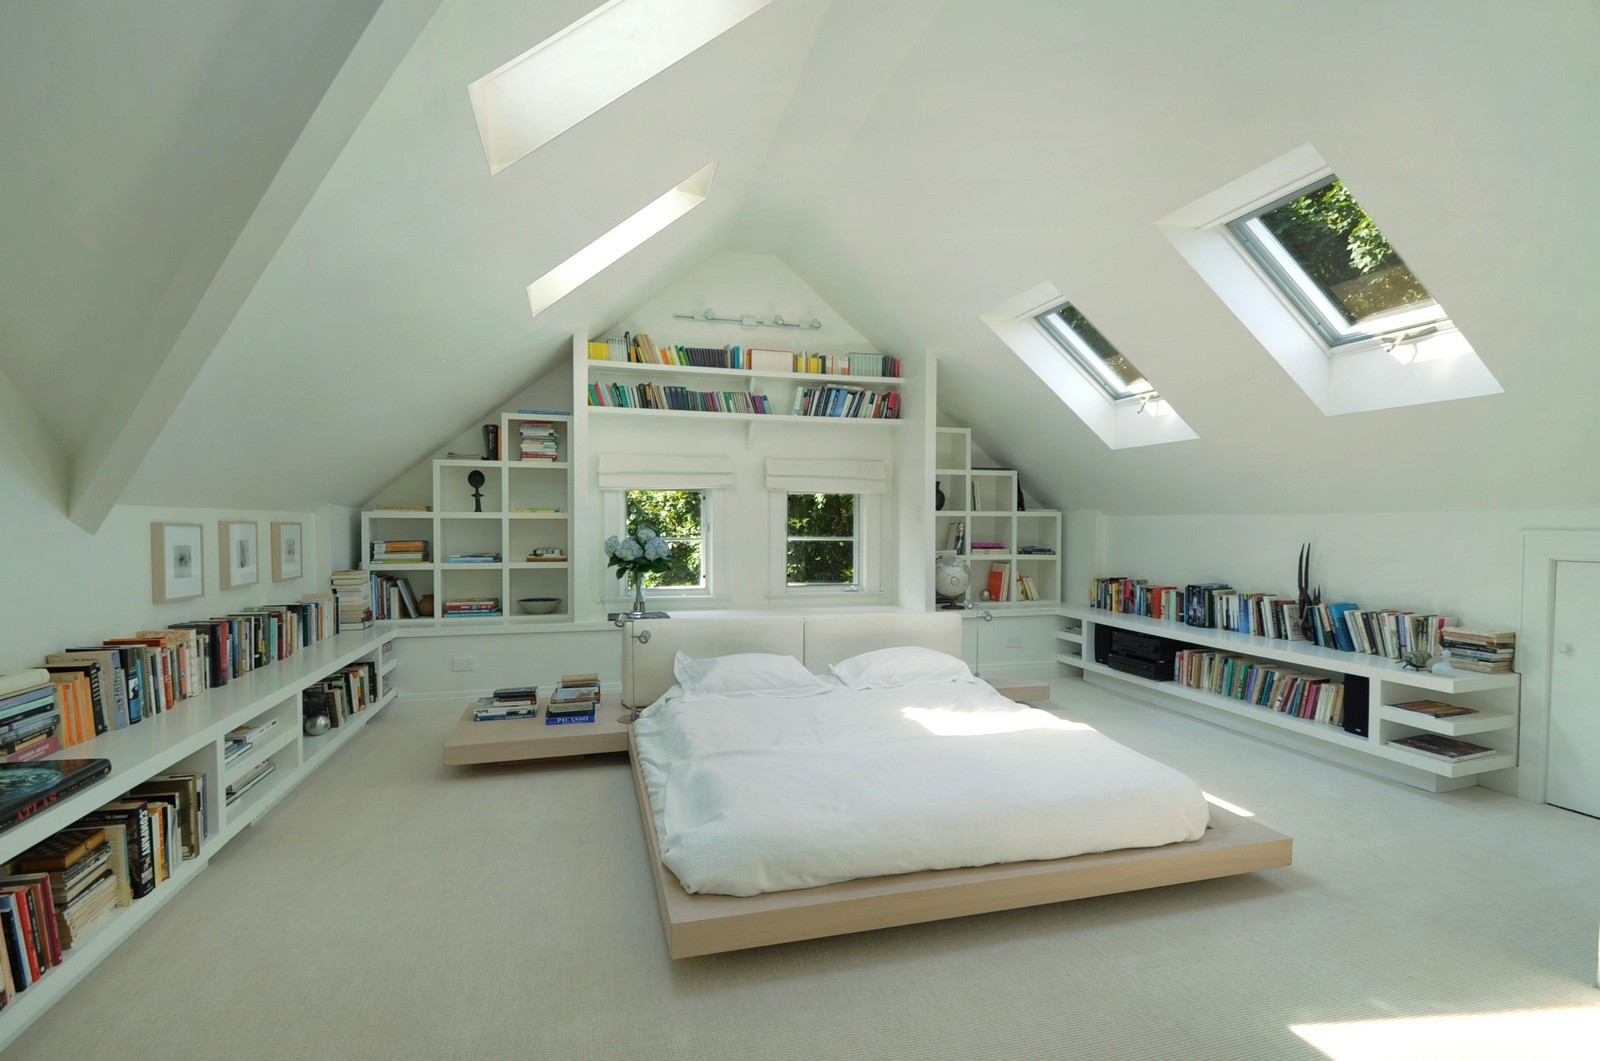 Minimal Eaves loft bedroom conversion